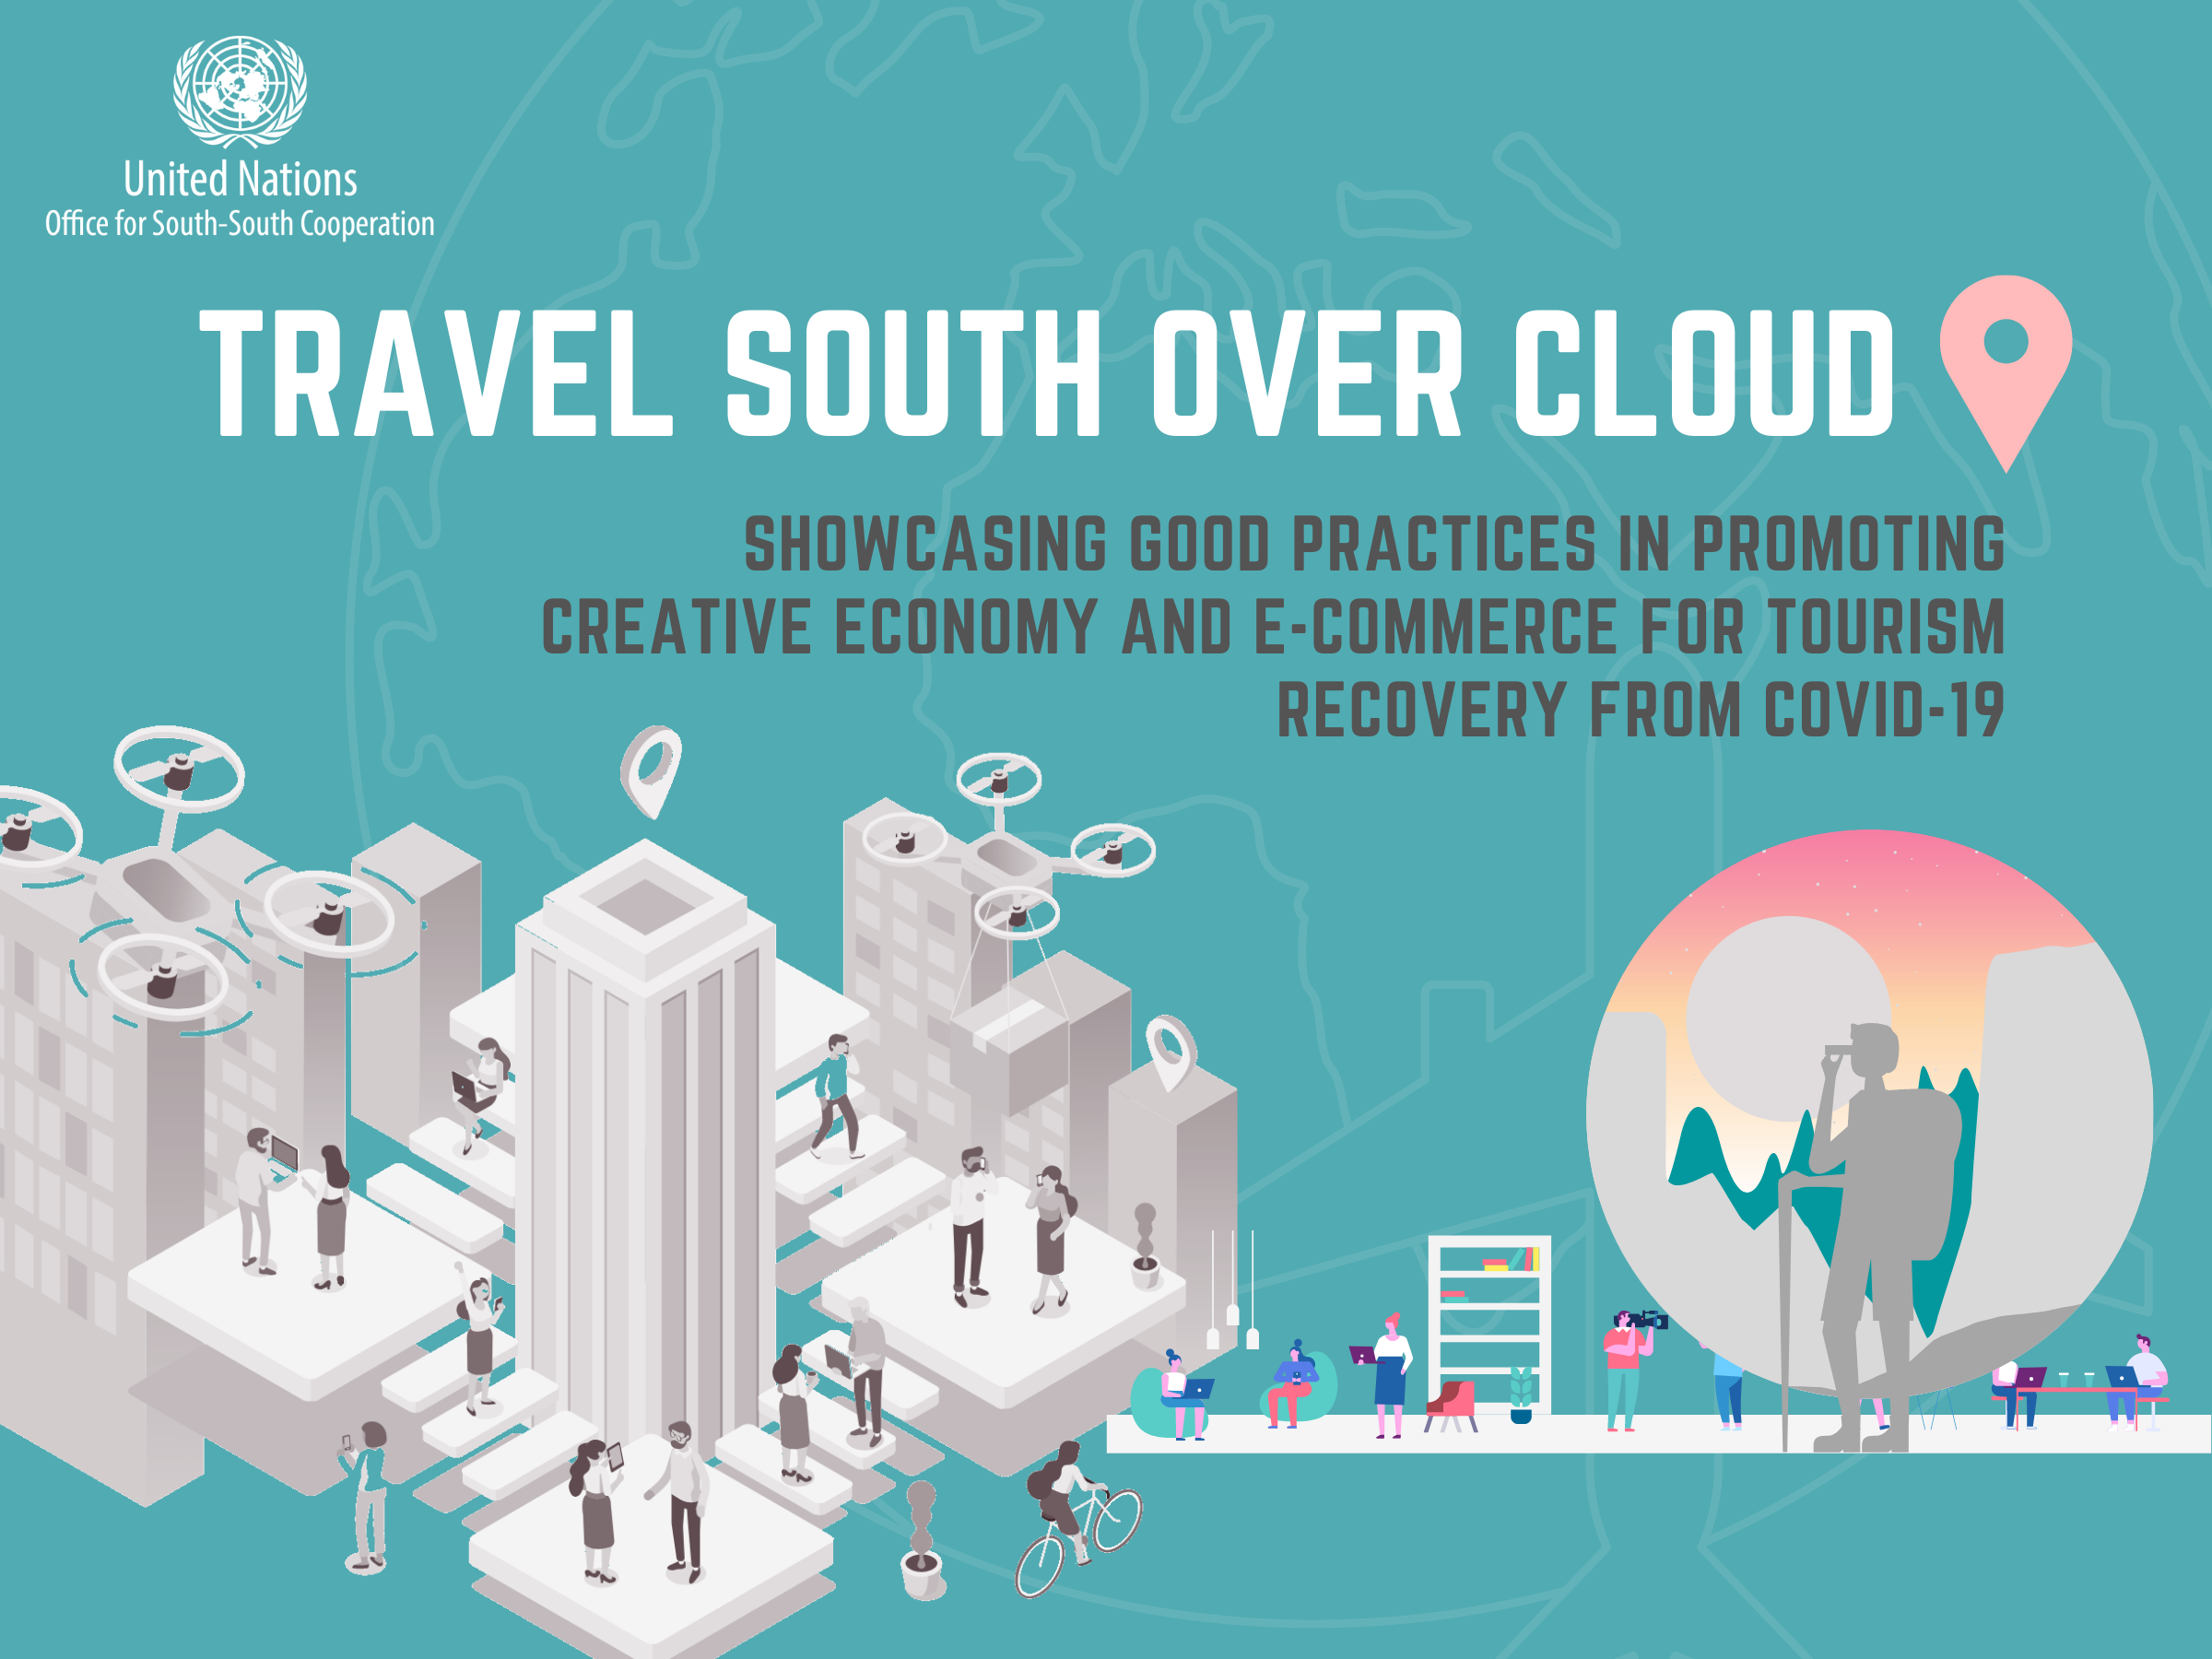 Travel South Over Cloud – Showcasing Good Practices in Promoting Creative Economy & E-commerce for Tourism Recovery from COVID-19